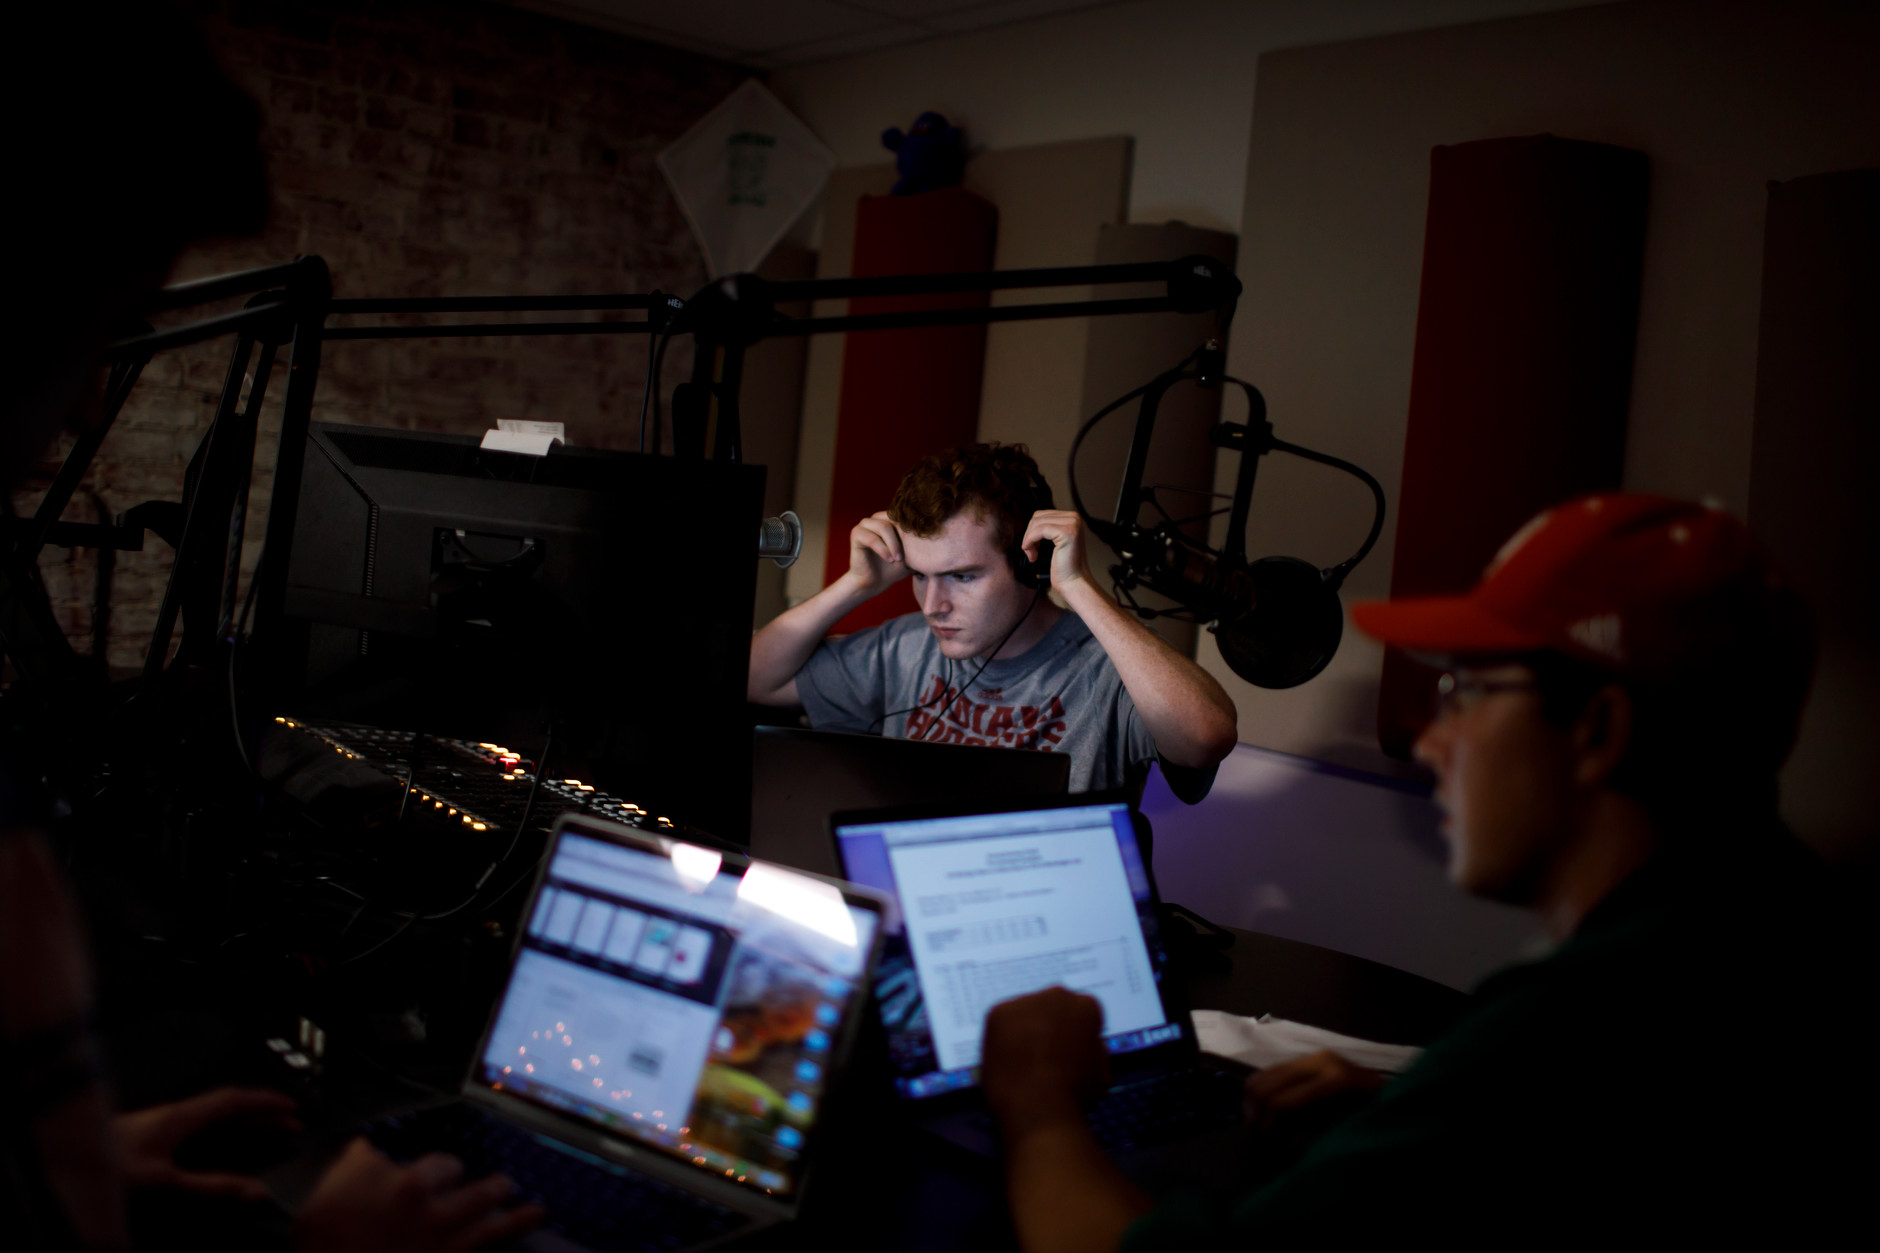 Students prepare to broadcast a sports program in the WIUX studios in Franklin Hall on Tuesday, Sept. 25, 2018.